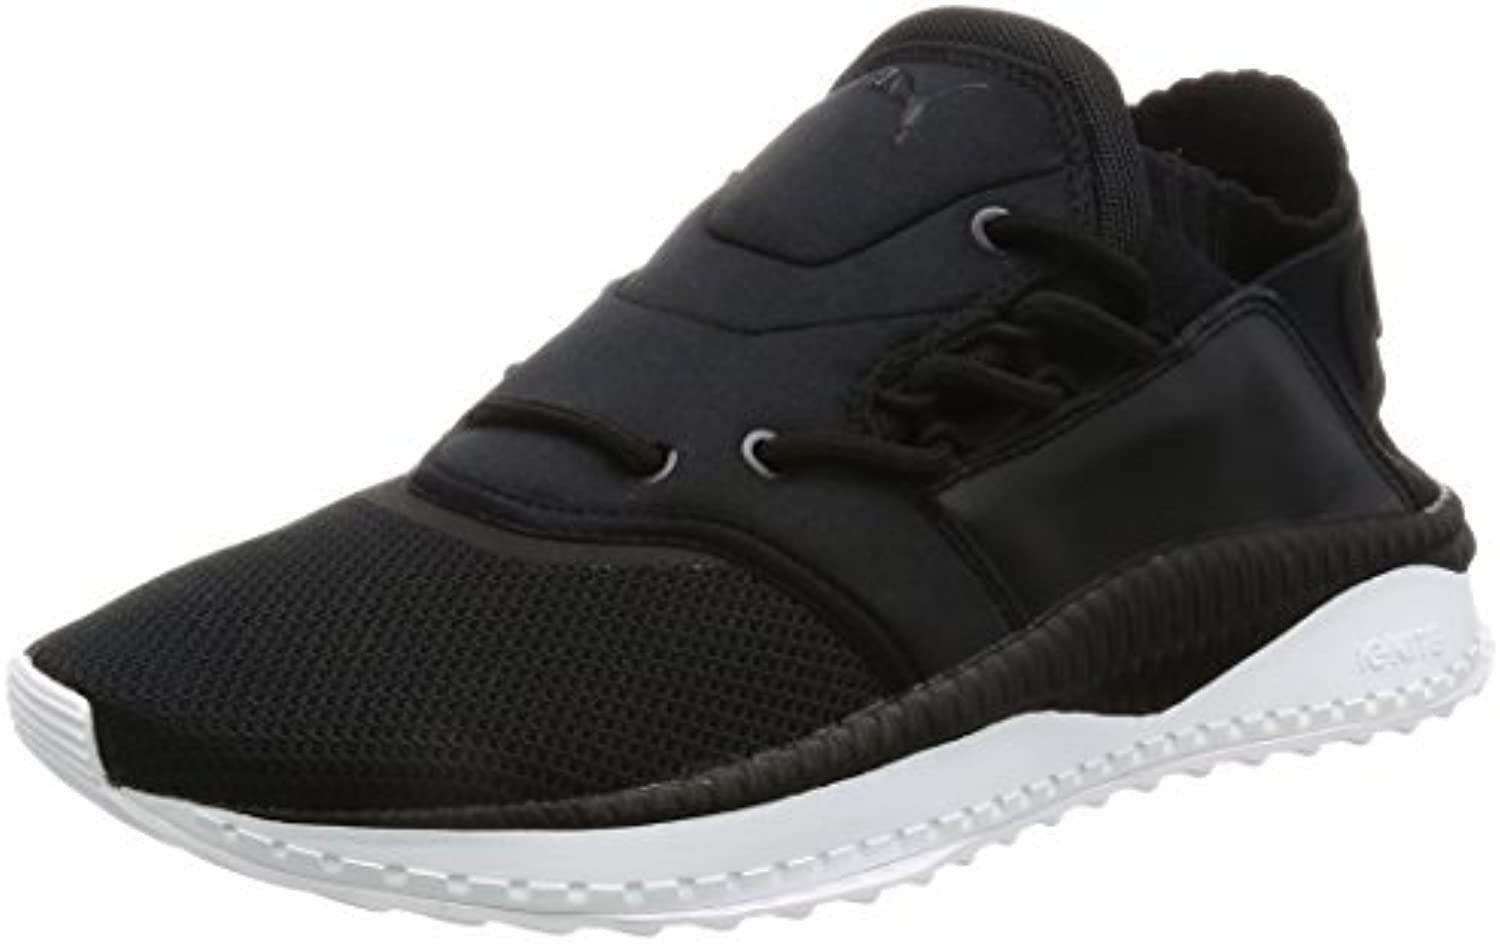 Skechers Synergy 2.0-Mirror Image, Entrenadores para Mujer -